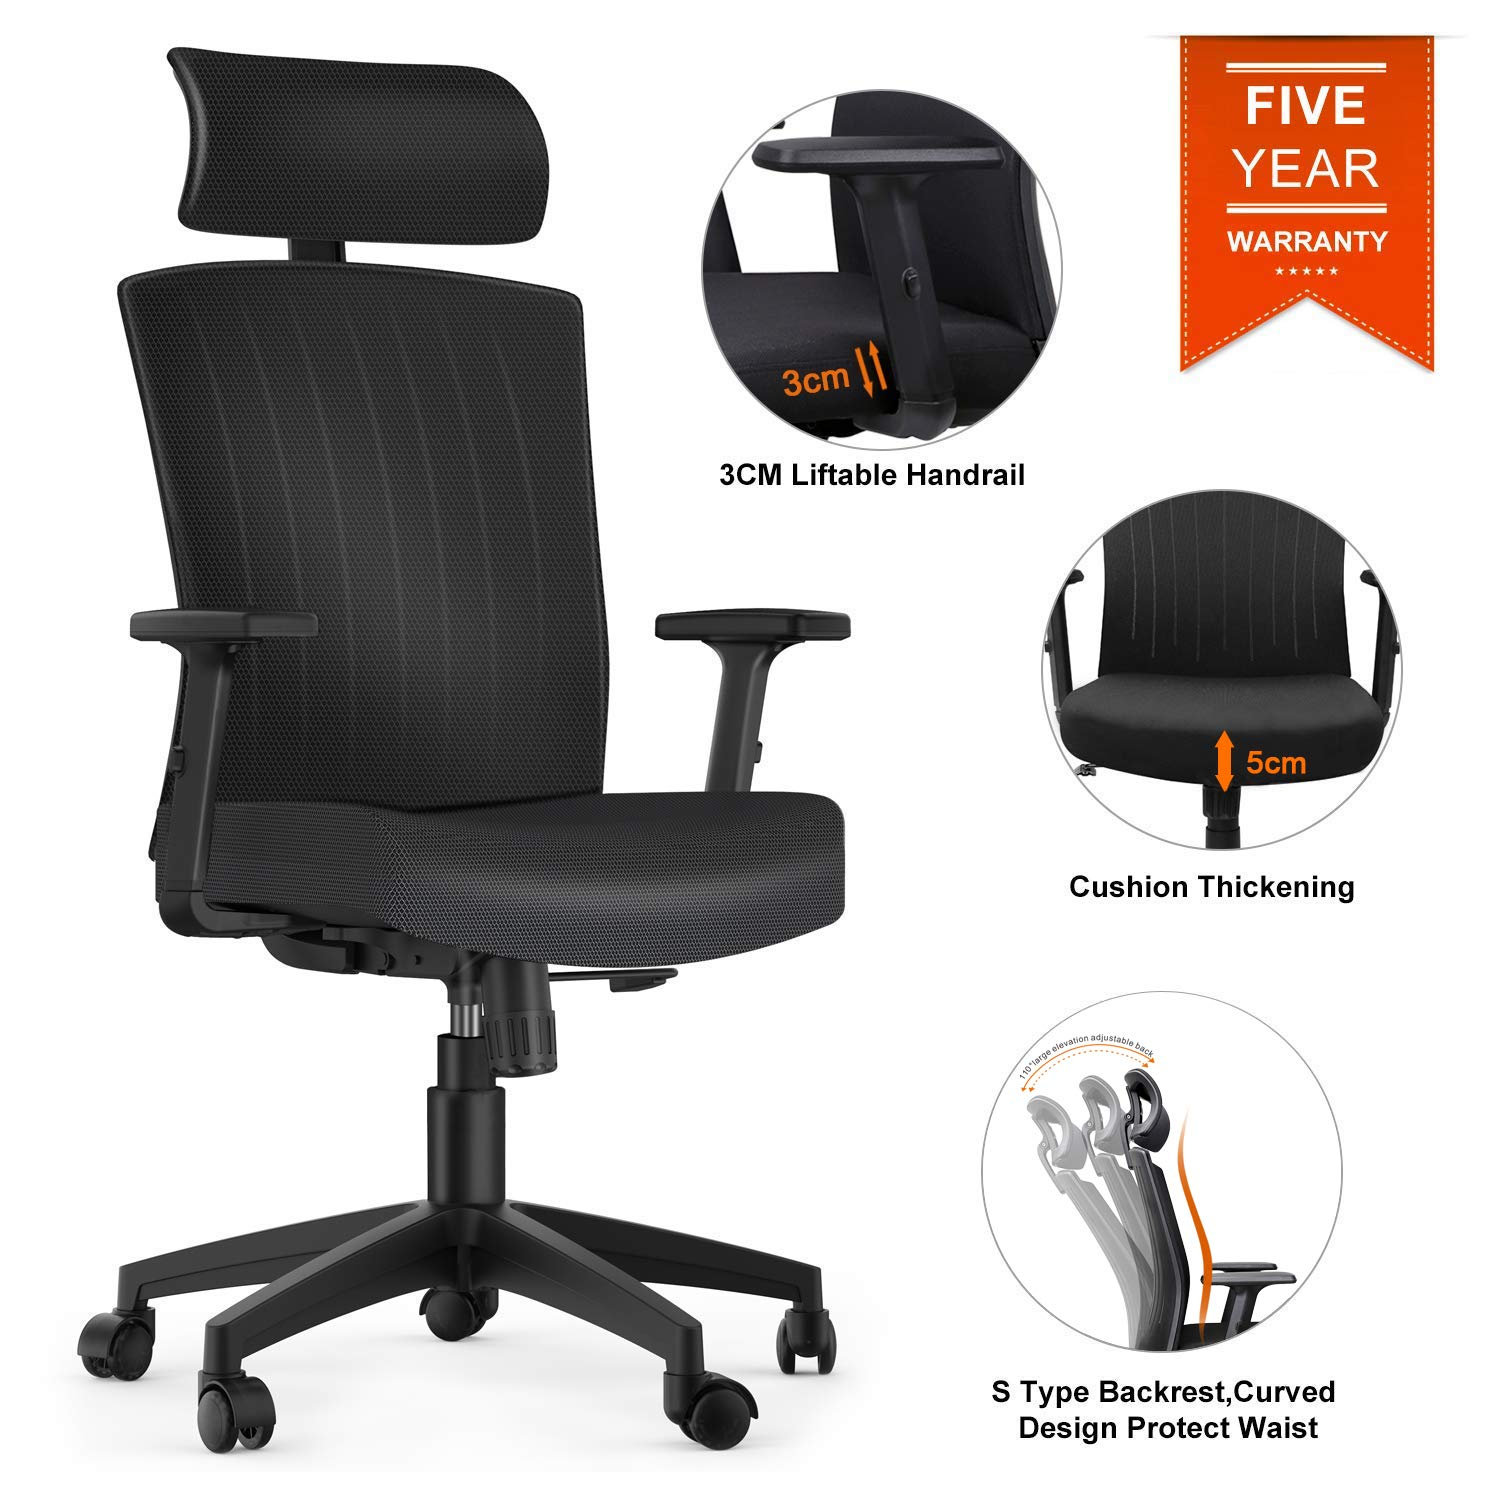 Komene Computer Desk Chairs with Adjustable Headrest,Armrests, Seat Height,High Back